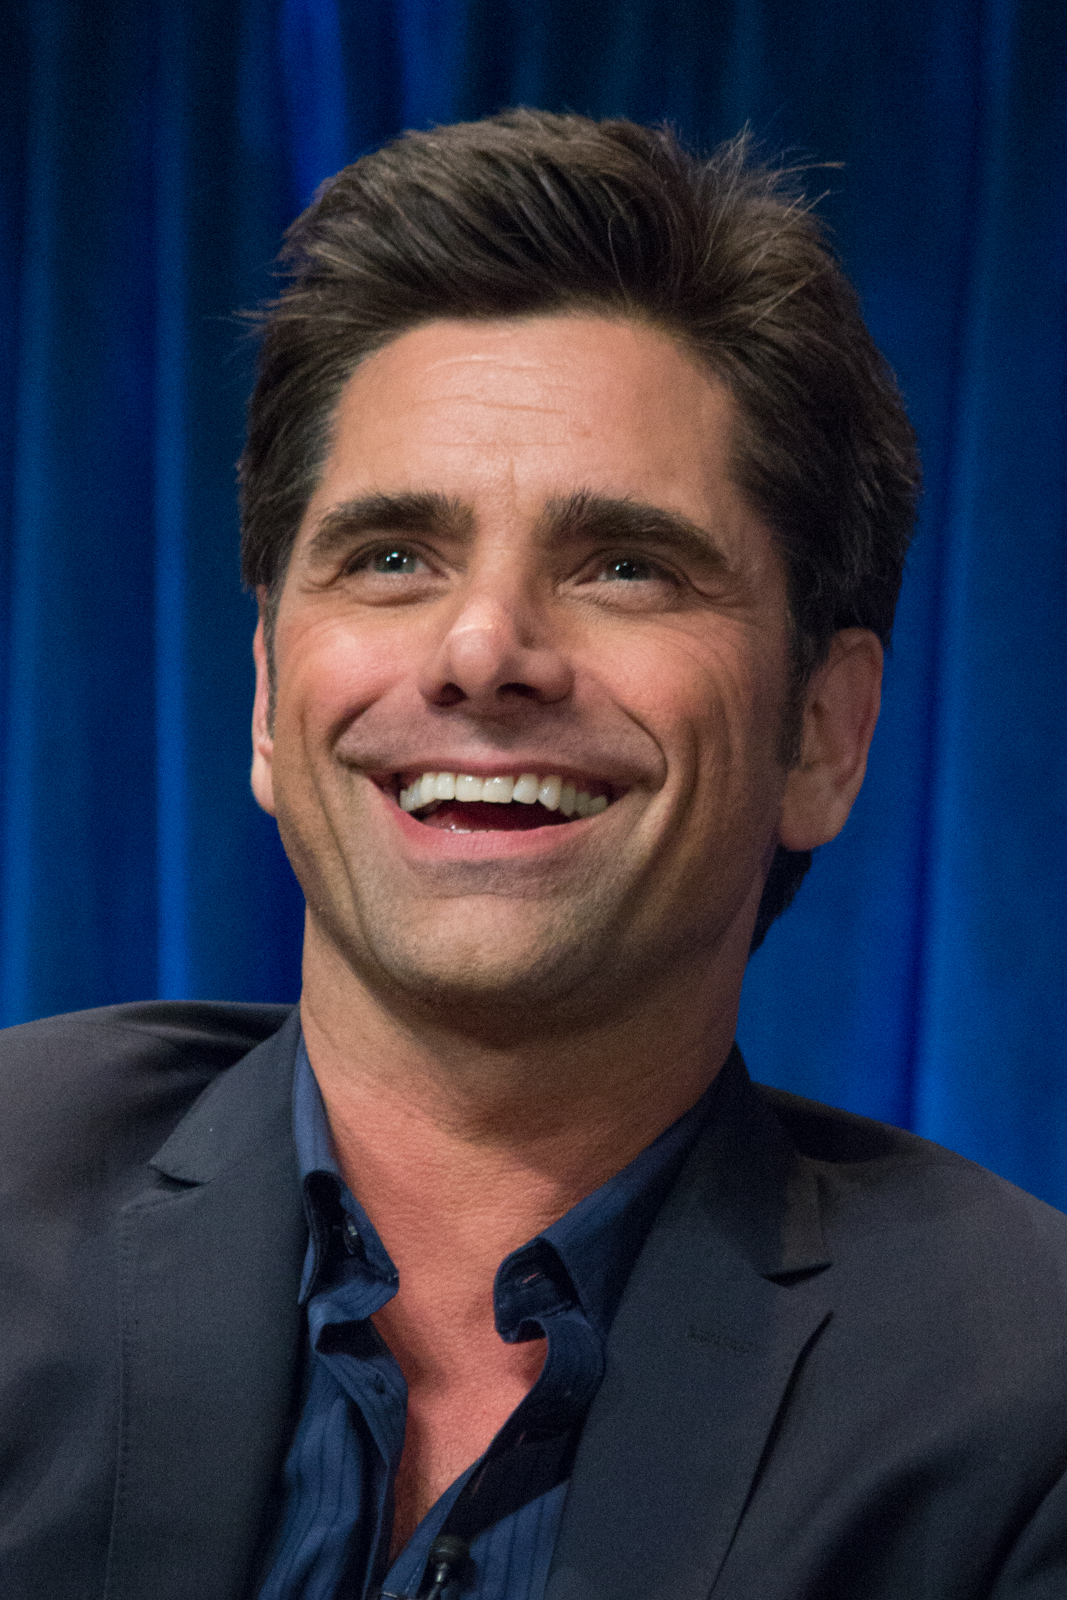 John Stamos at PaleyFest 2013.